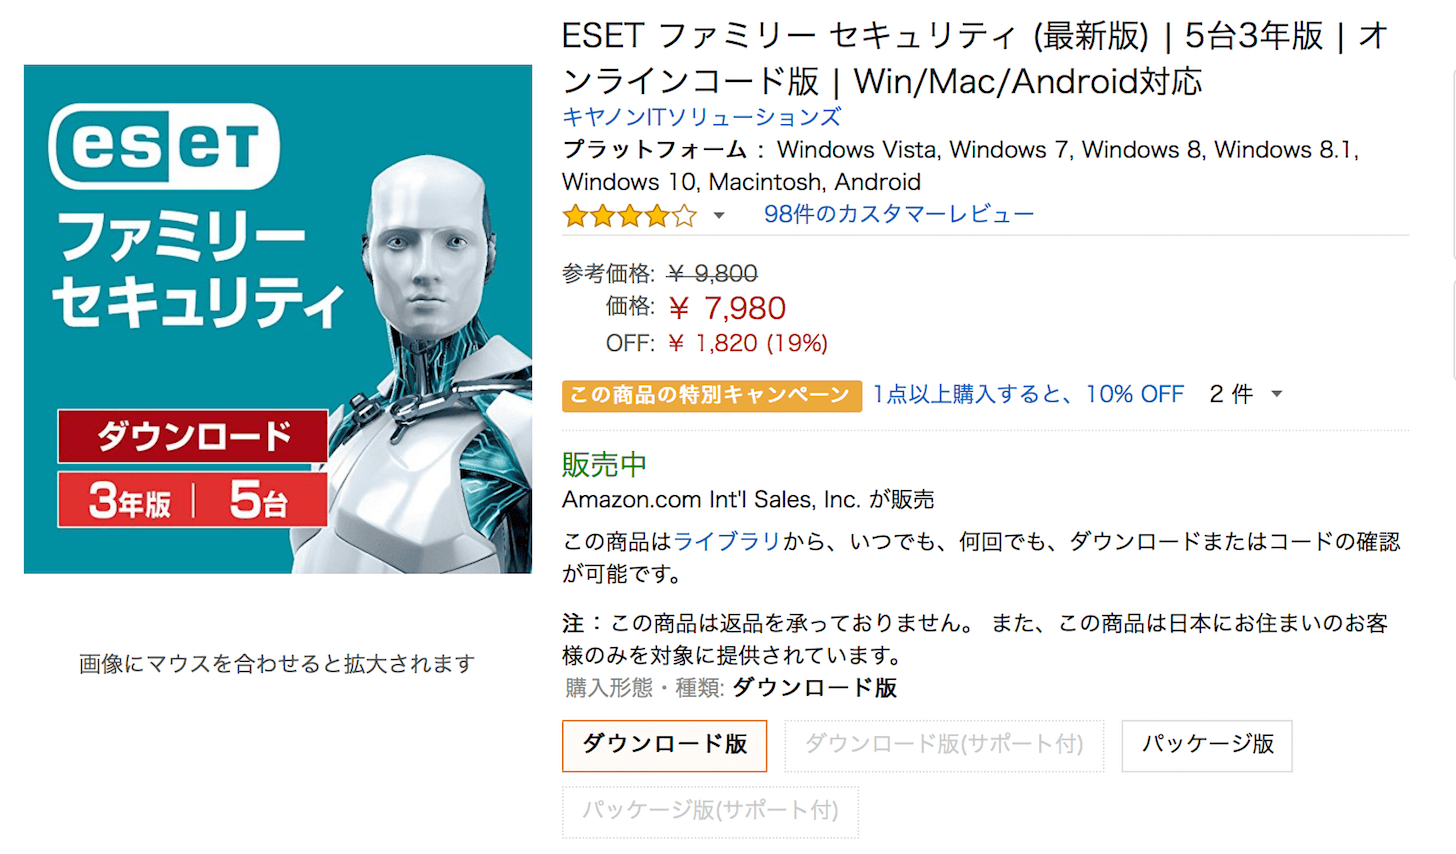 ESET security sale purchase 2